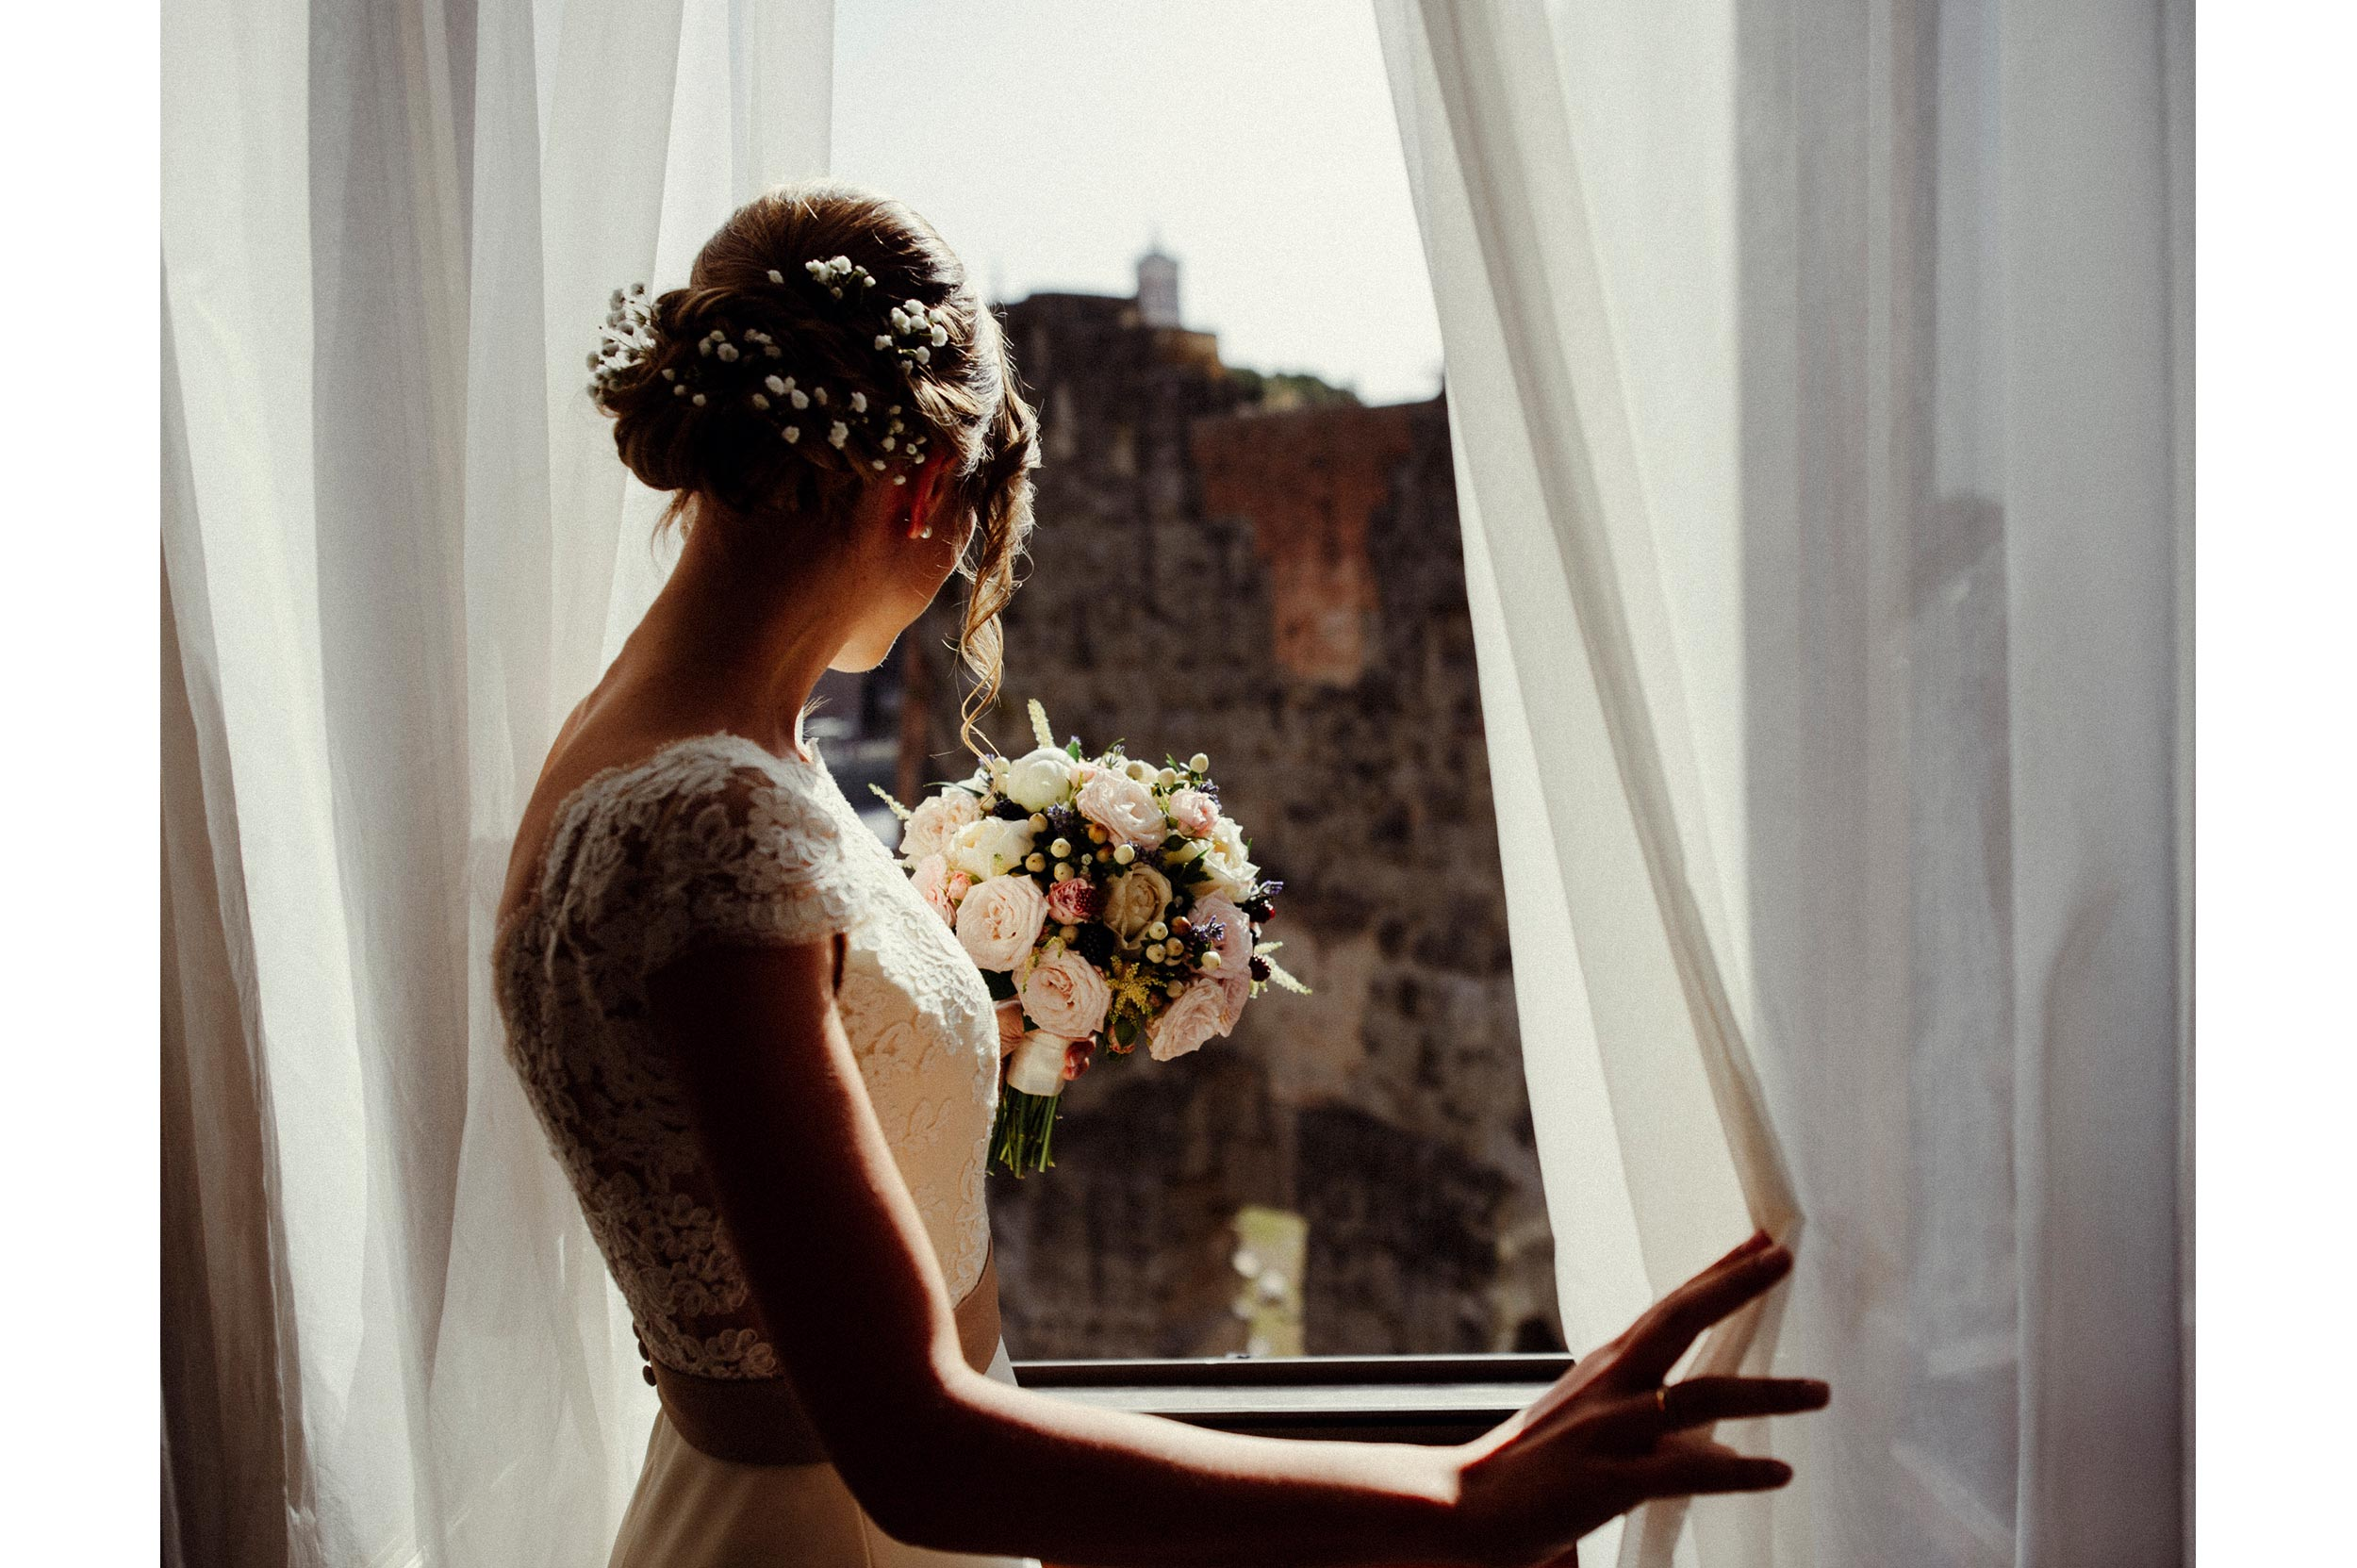 Roman Forum Rome Wedding Photographer Alessandro Avenali Bride at the Window with Bouquet.jpg